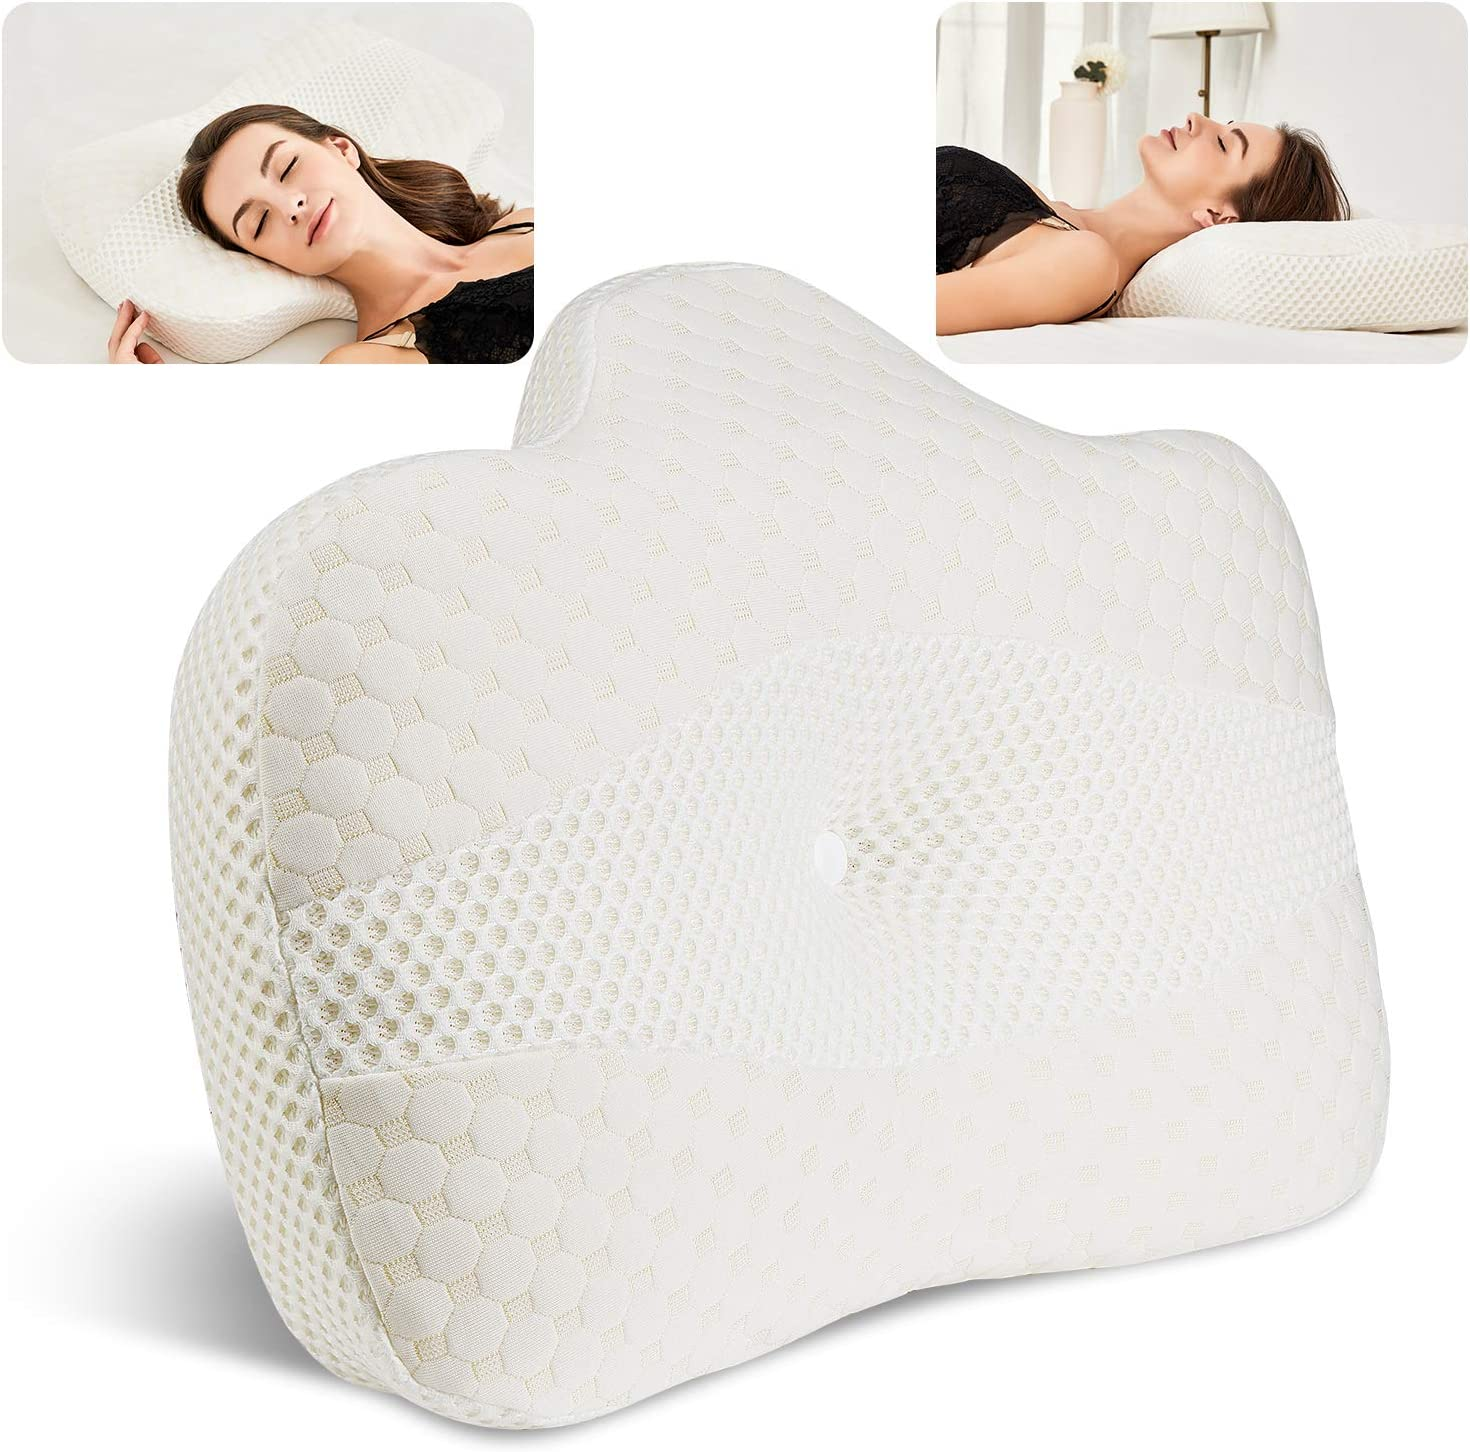 BEAUTRIP Memory Foam Cervical Pillow for Sleeping | Ergonomic Best Anti Snore Pillows for Neck Support and Shoulder Pain | Soft Contour Sleep Pillows | Bed Pillows for Back, Side and Stomach Sleepers